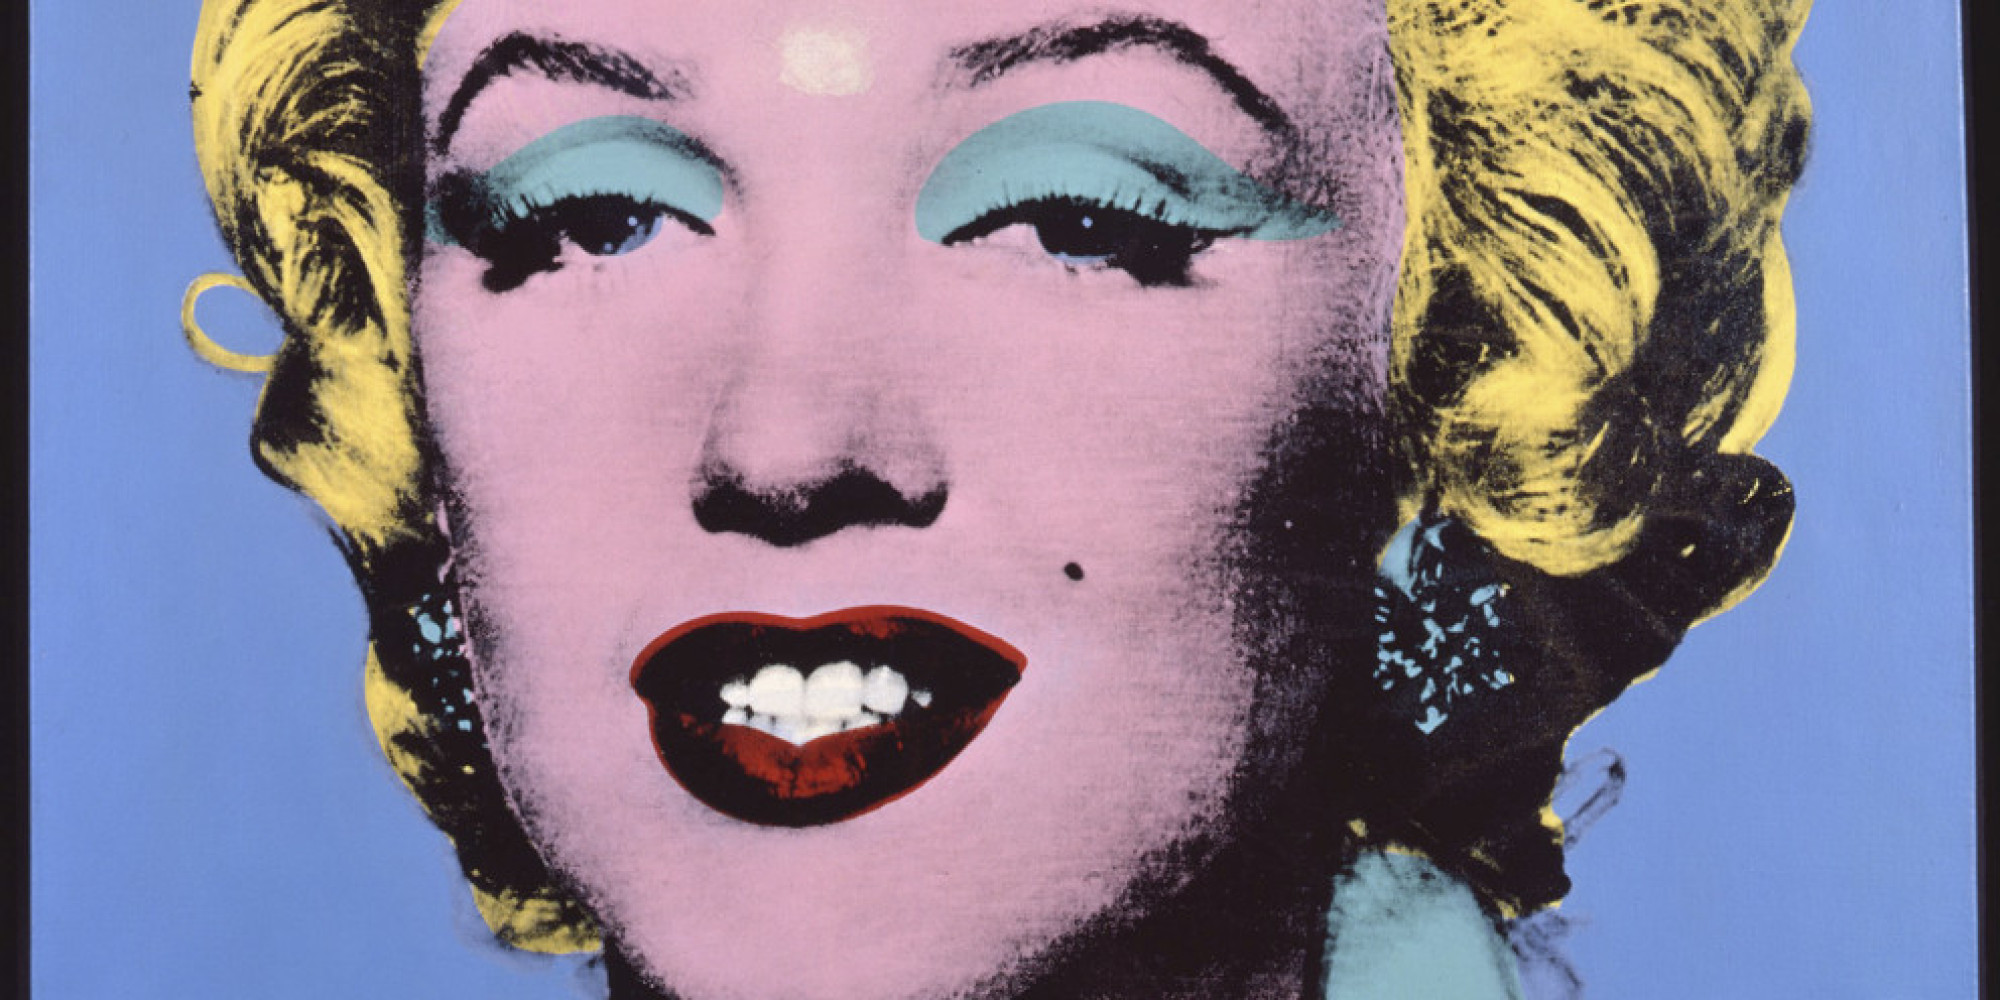 Spencer Museum of Art Collection - Collection Search Andy warhol bodley gallery